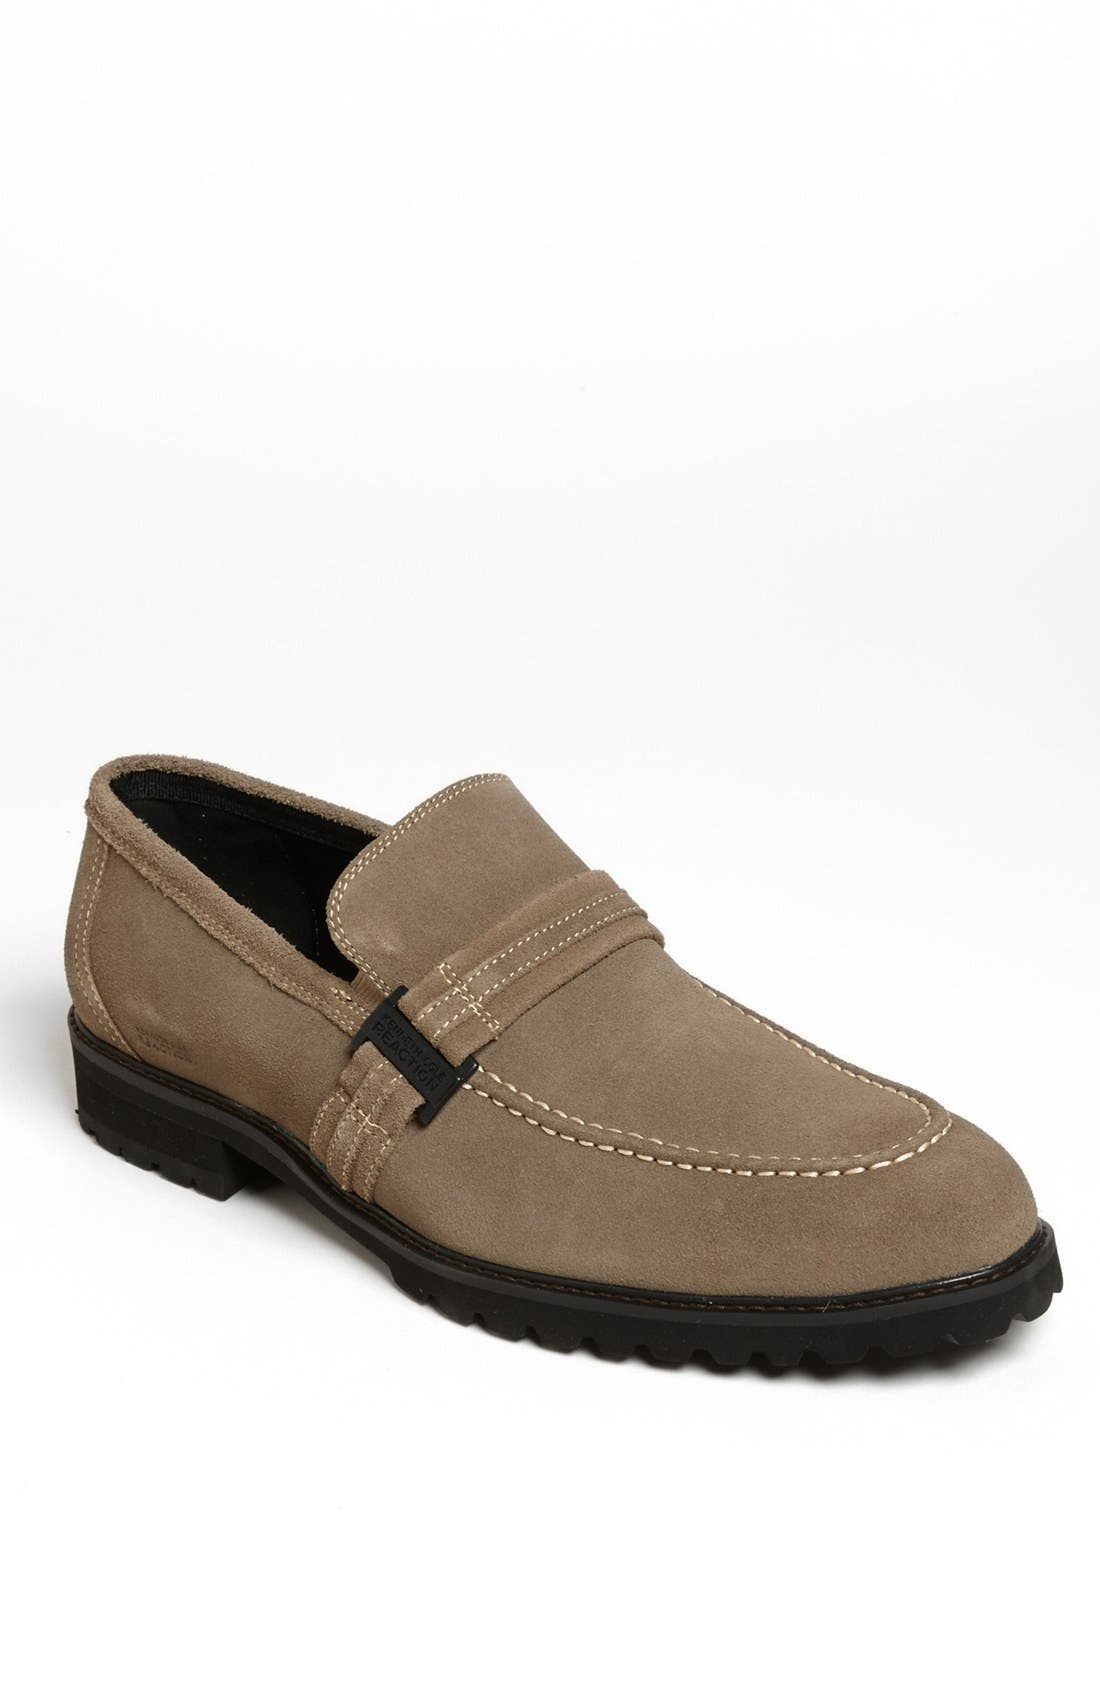 Alternate Image 1 Selected - Kenneth Cole Reaction 'Now Playing' Loafer